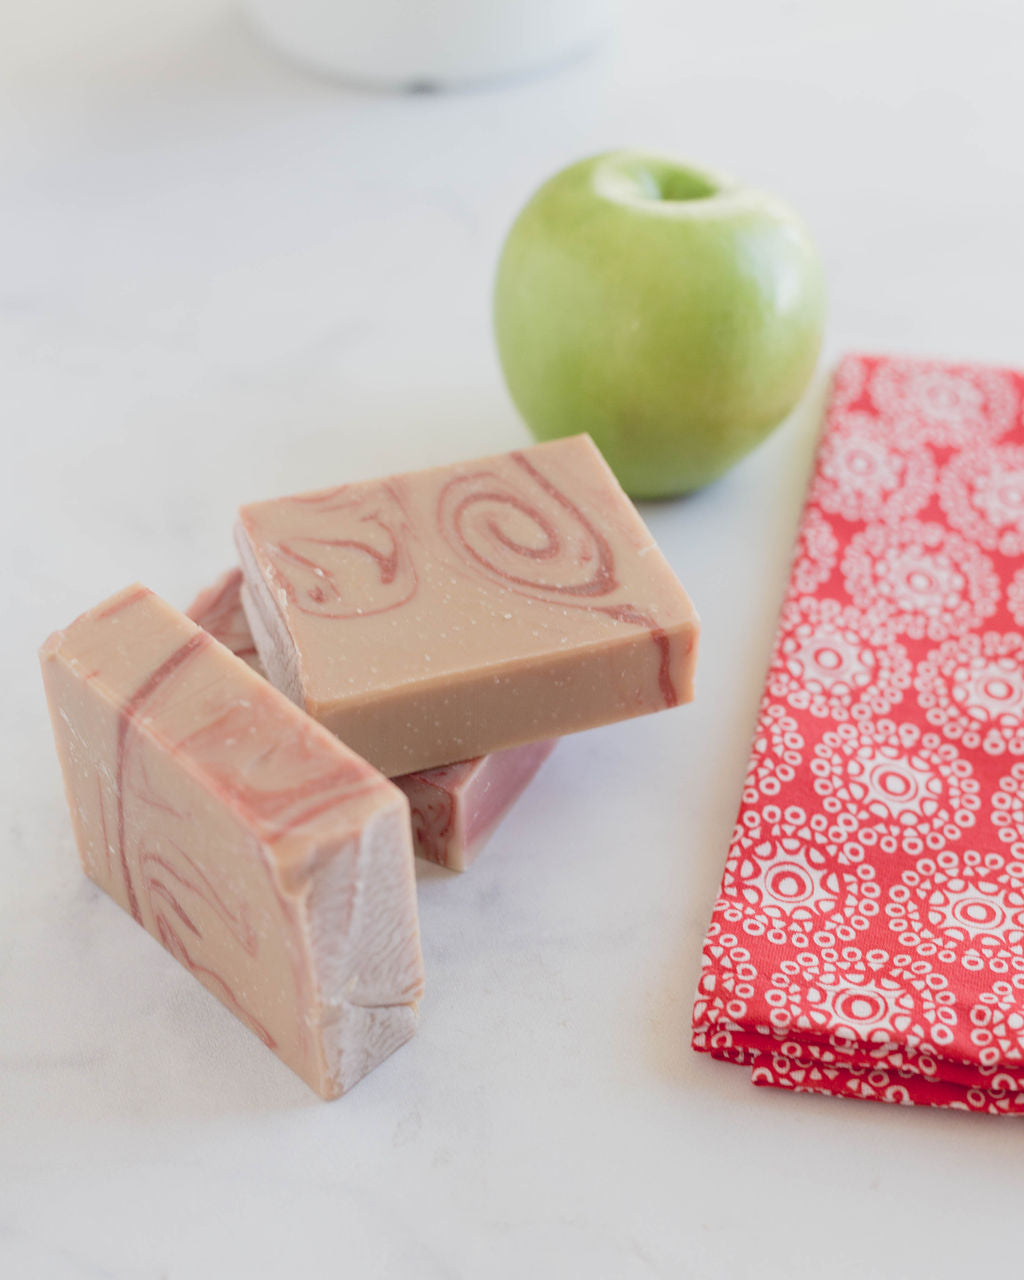 Apple Spice Goat Milk Soap